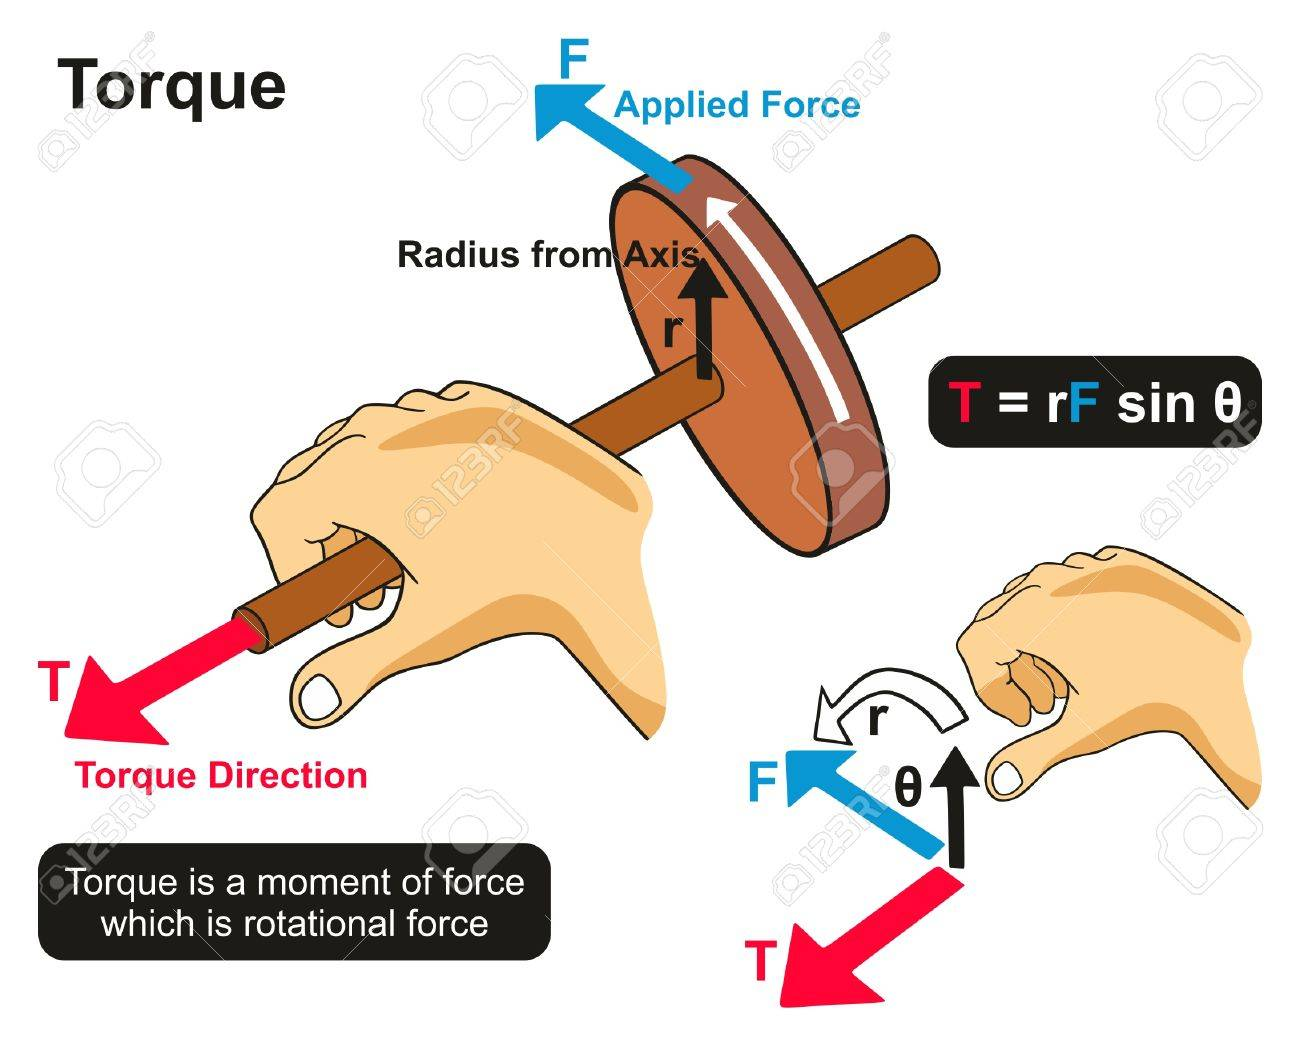 Torque example physics lesson infographic diagram showing hand imagens torque example physics lesson infographic diagram showing hand twisting axis of wheel in rotational direction an experiment for science education ccuart Choice Image